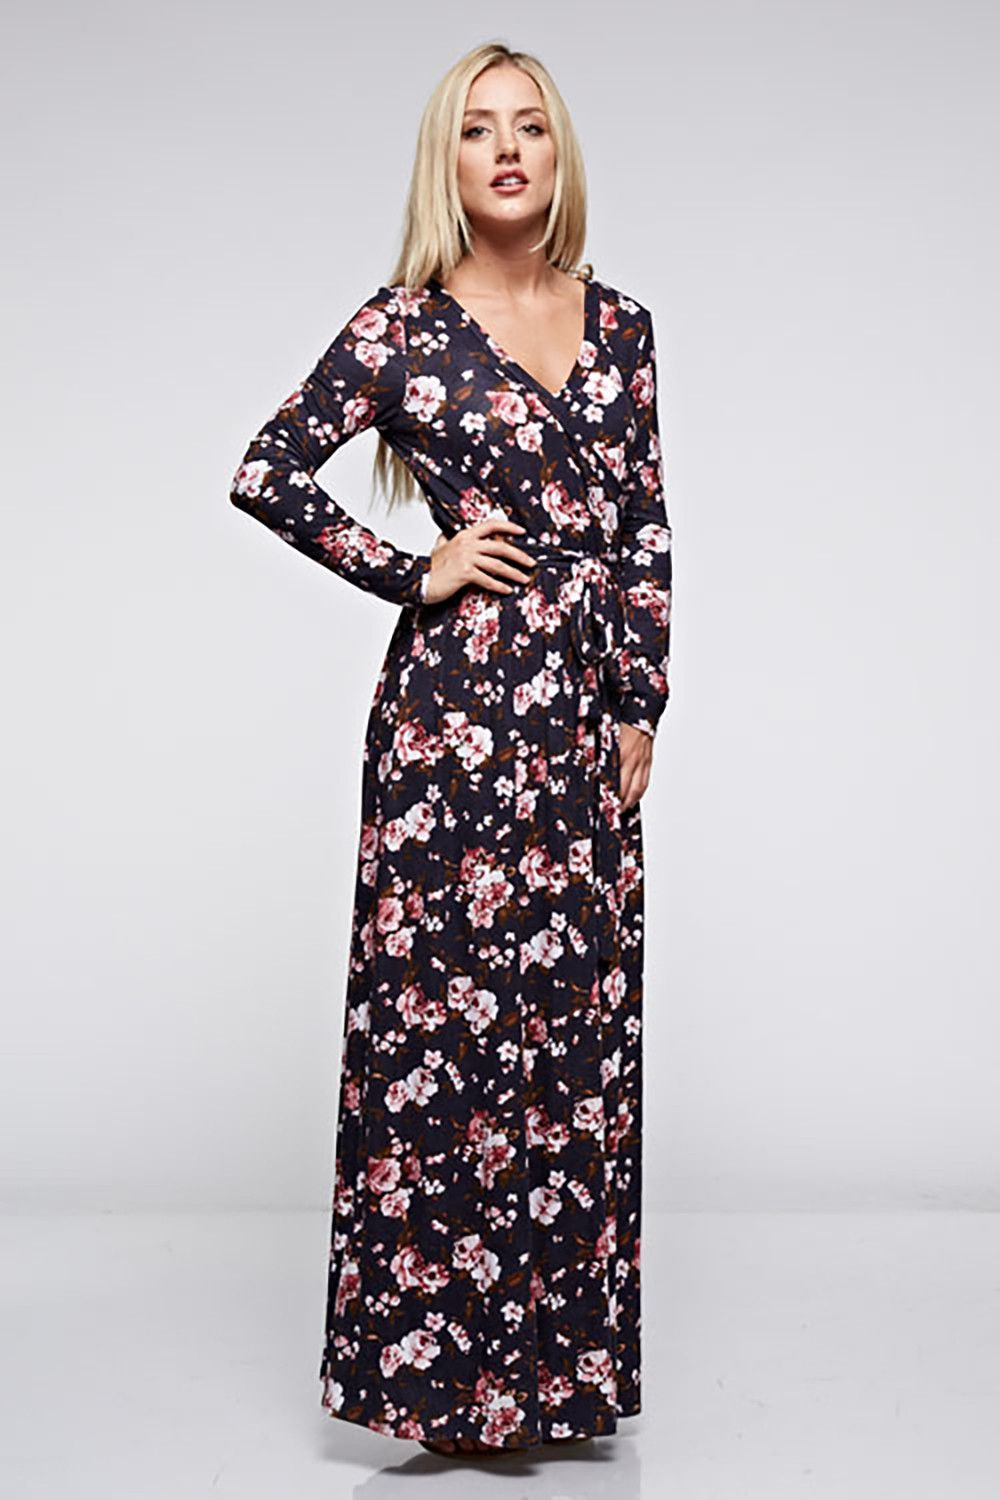 The Emma Floral Spring Maxi Dress